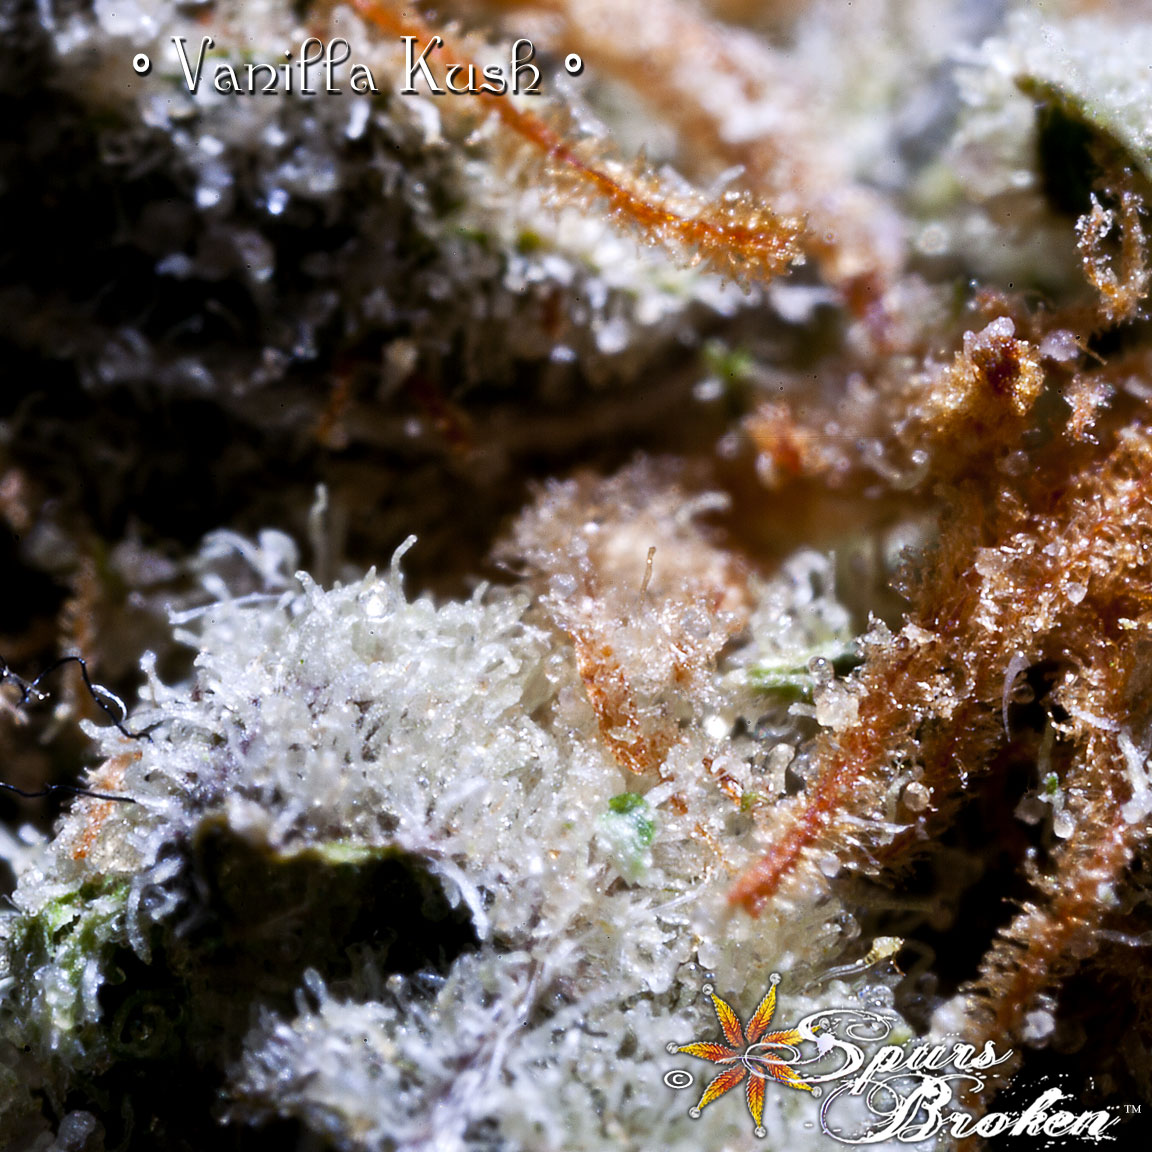 Vanilla Kush - Cannabis Macro Photography by Spurs Broken (Robert R. Sanders)